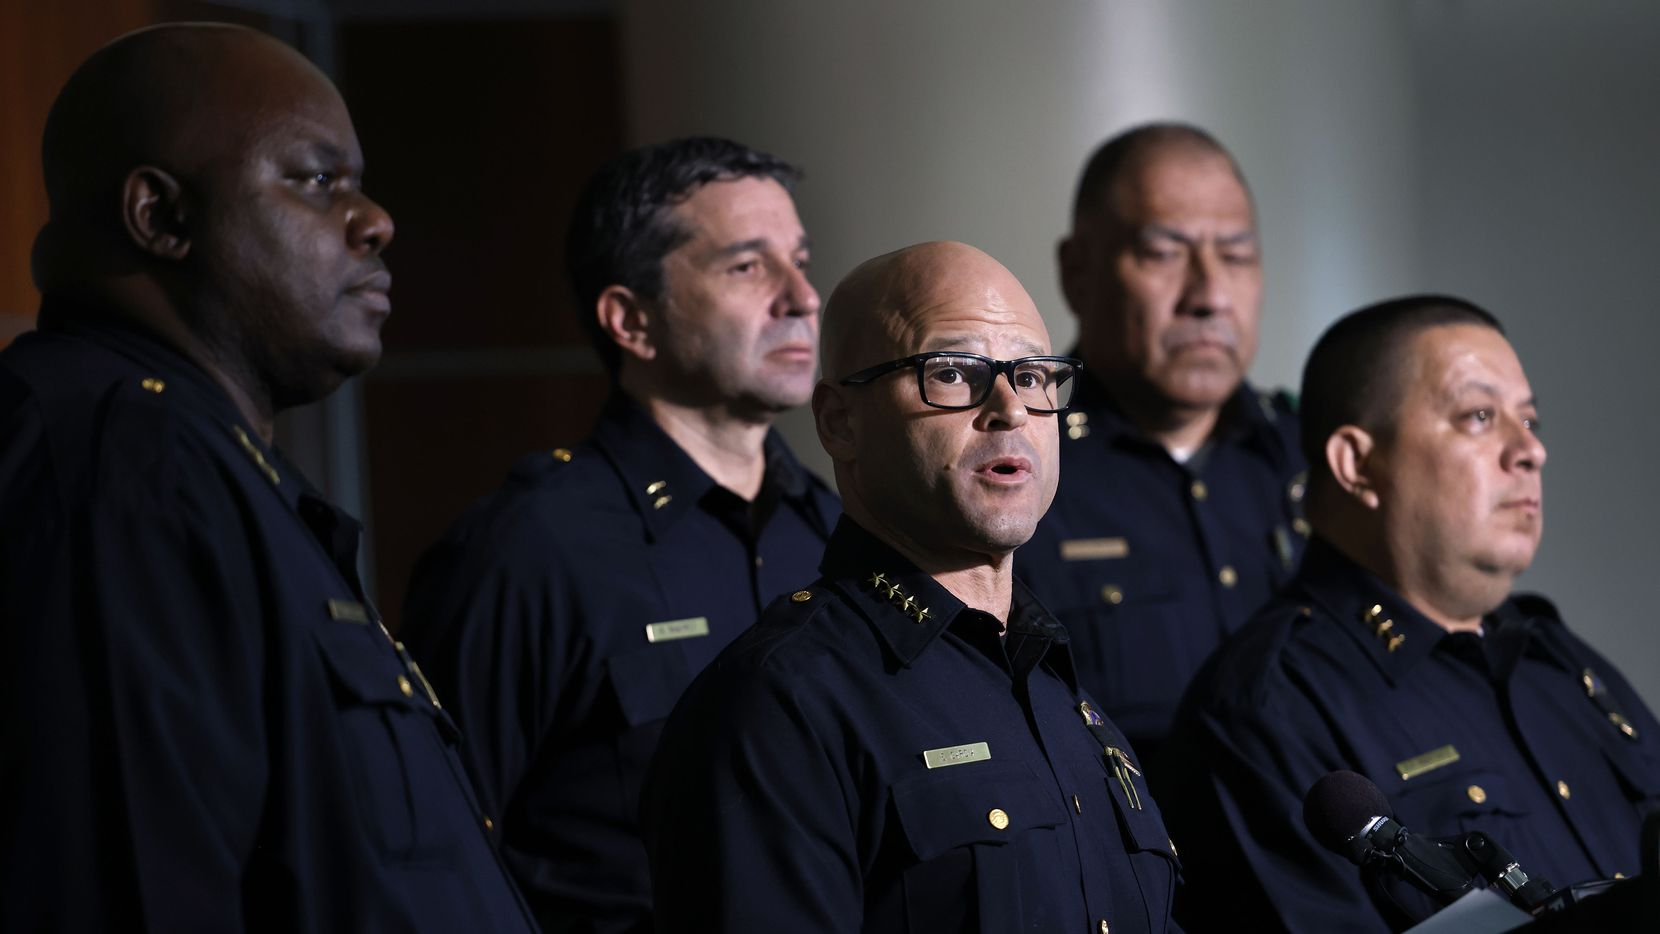 Dallas Police Chief Eddie Garcia delivers remarks about the arrest of Angela West, wife of Republican Texas gubernatorial candidate Allen West, during a press conference at Dallas Police headquarters.